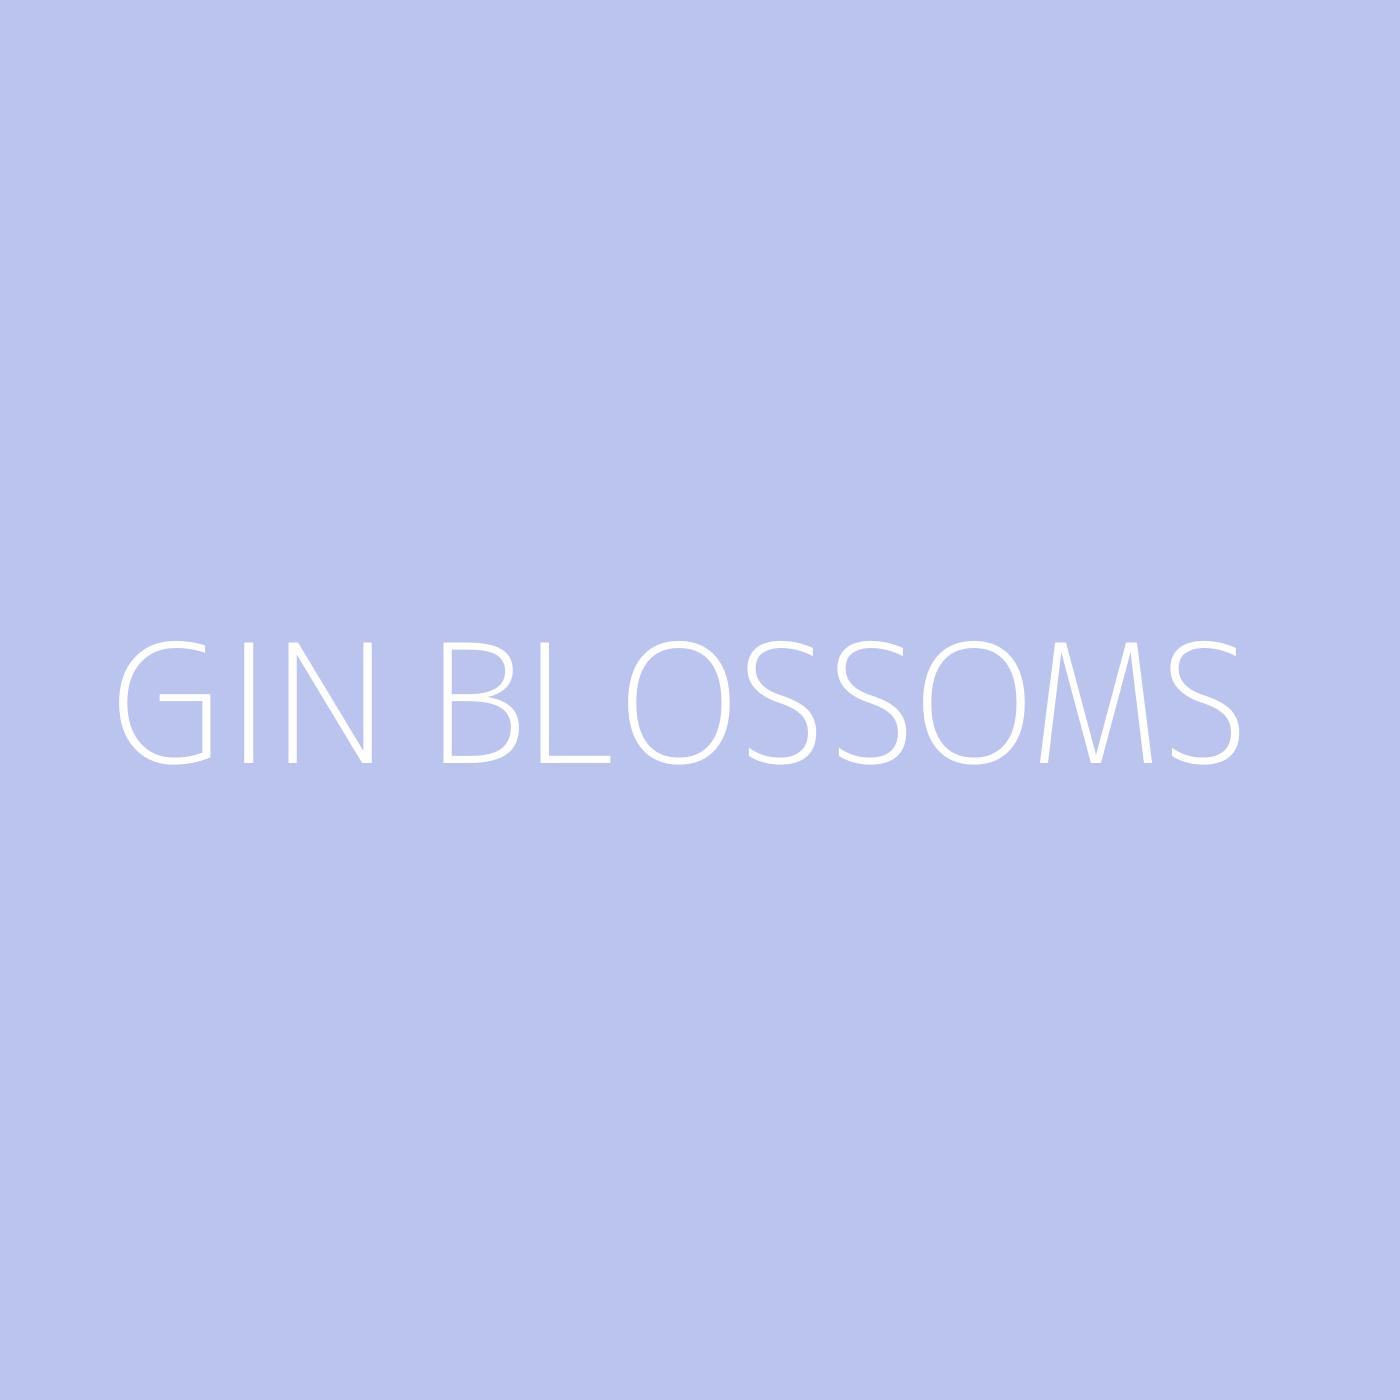 Gin Blossoms Playlist Artwork